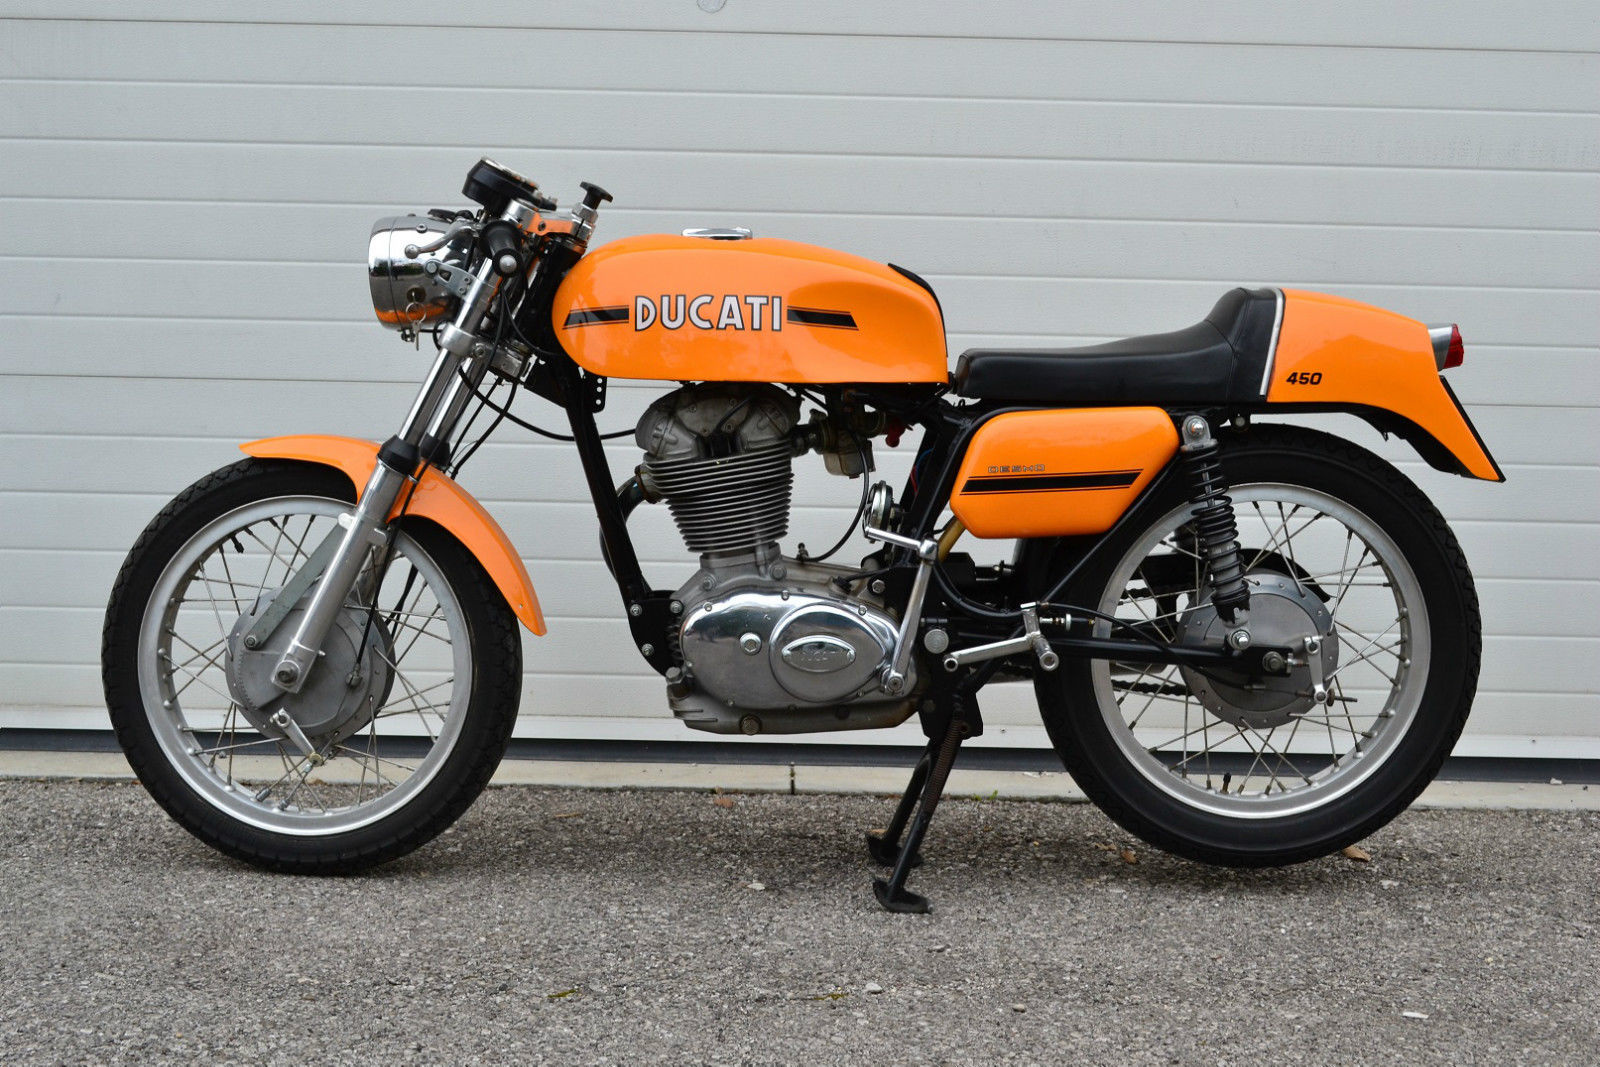 Ducati 450 Mark 3 1971 images #148083